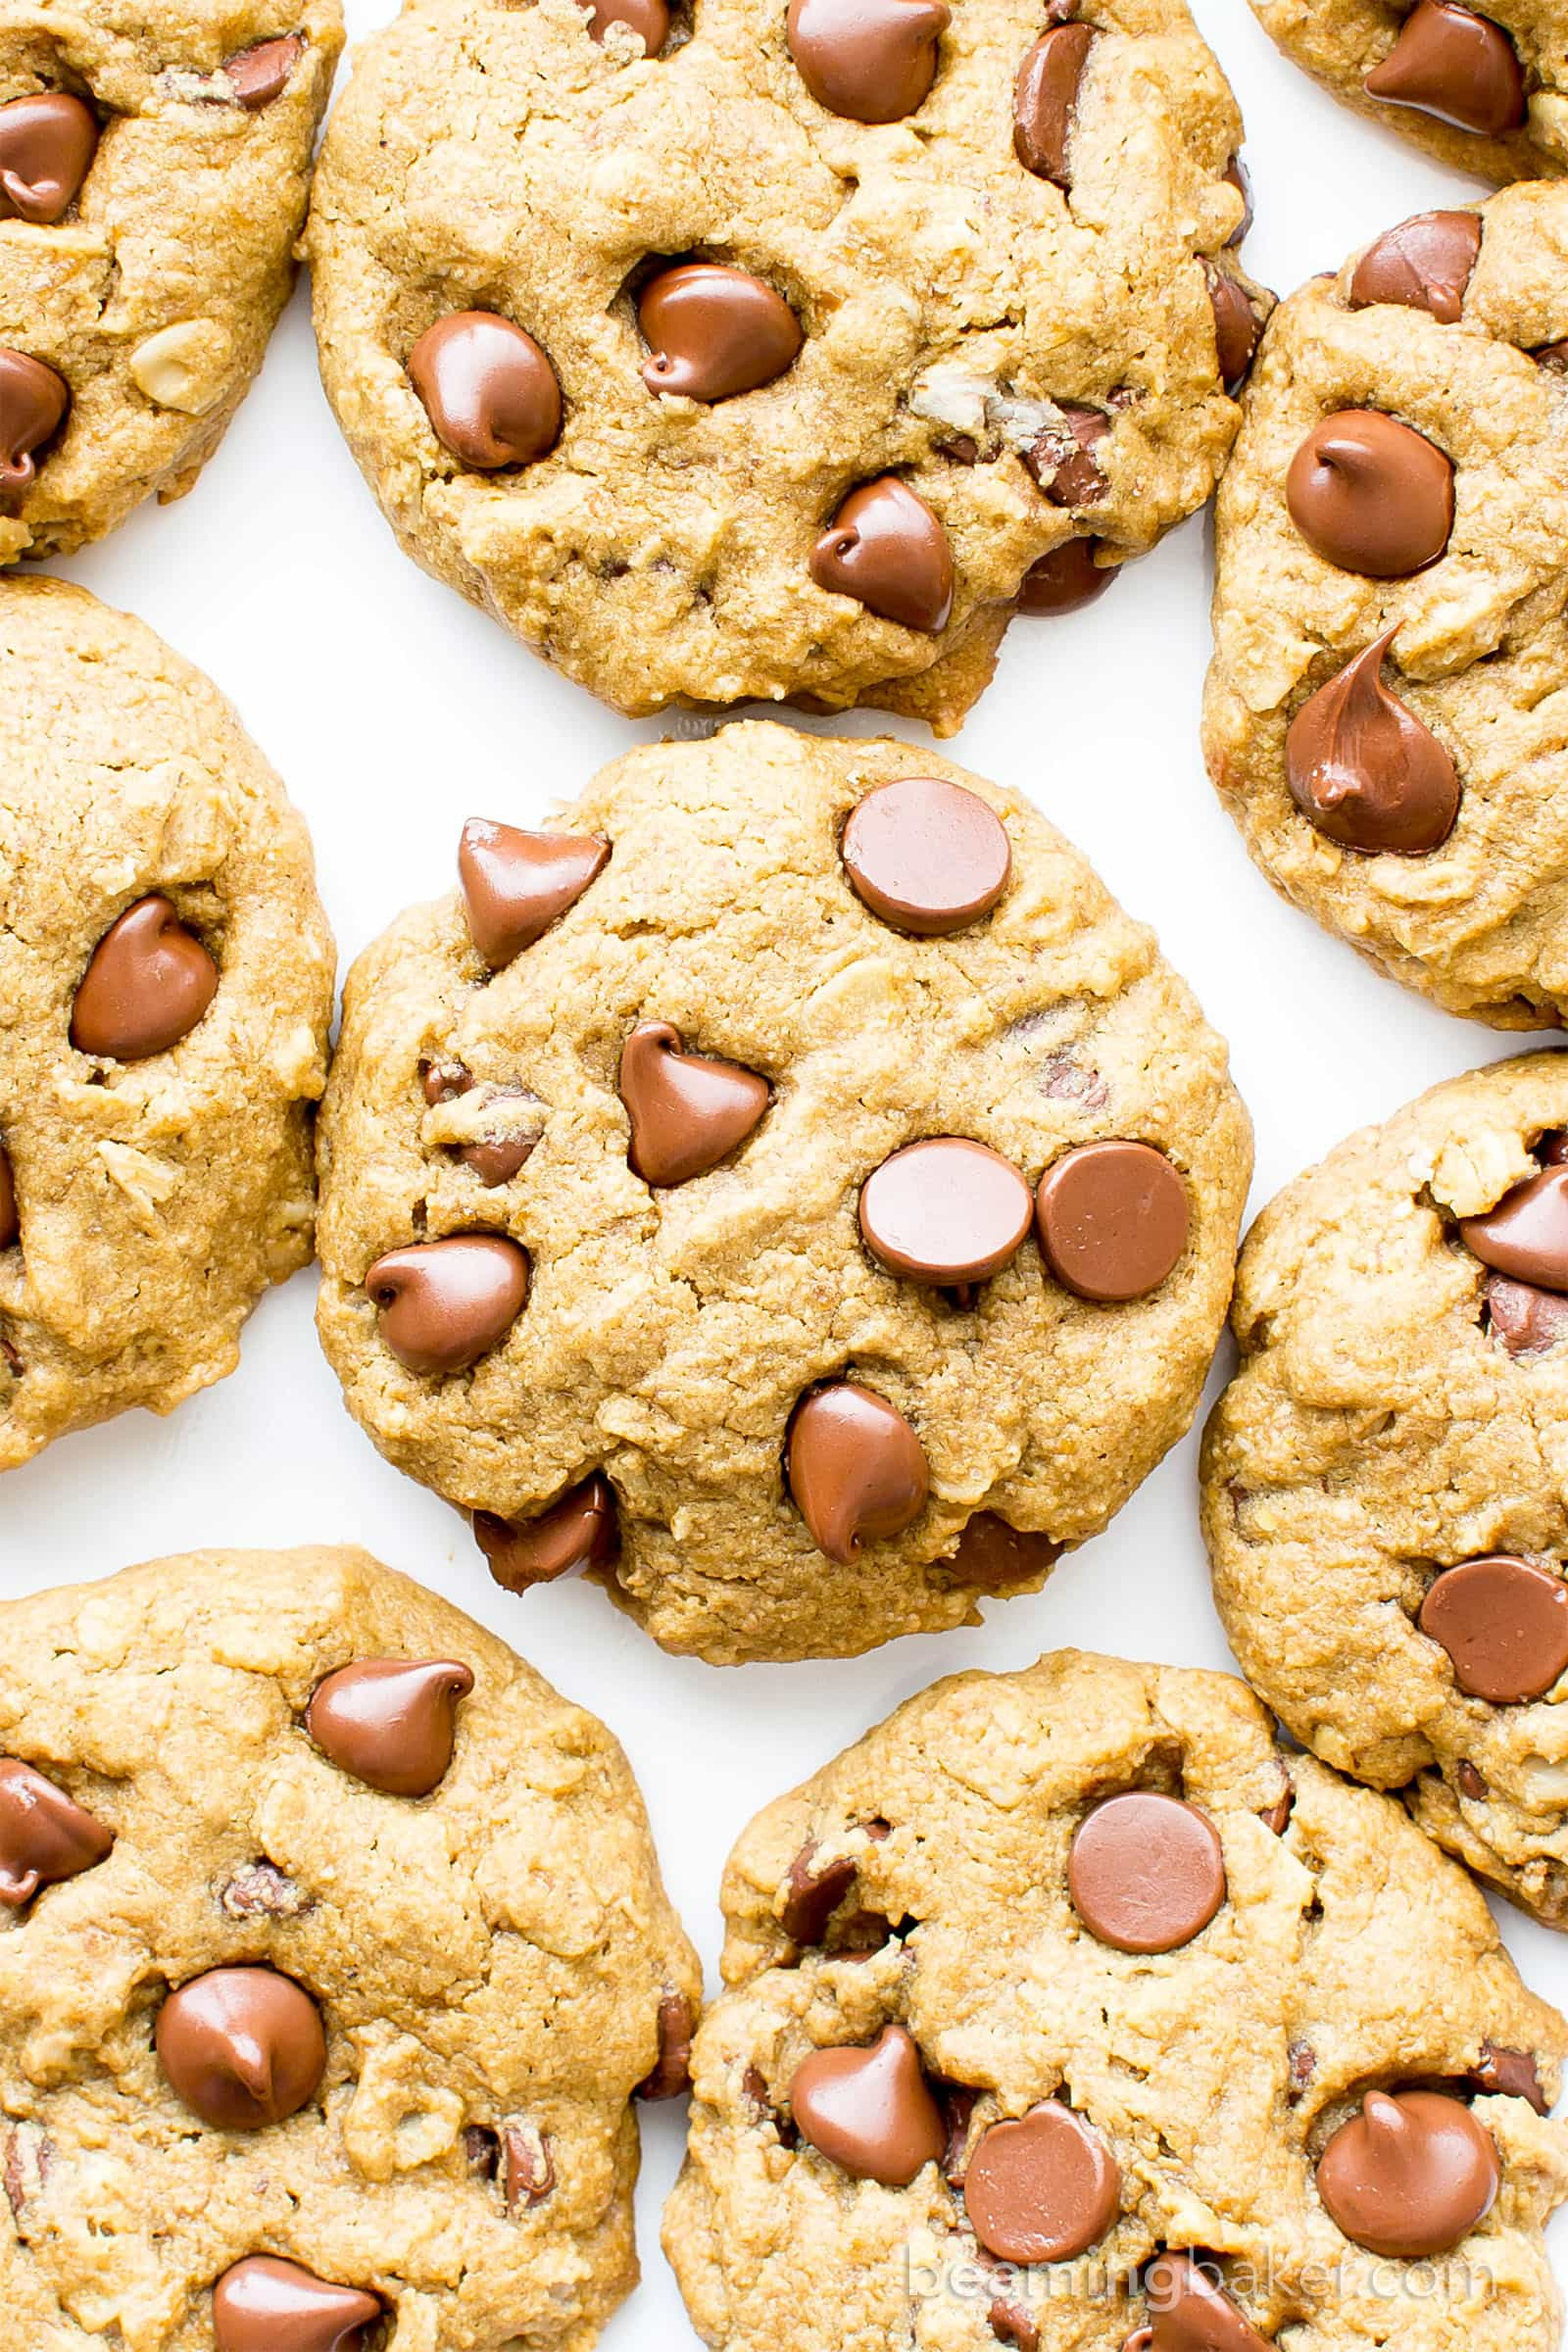 Gluten Free Vegan Oat Flour Chocolate Chip Cookies (V, GF): an easy recipe for simply delicious, soft, chewy chocolate chip cookies made with oat flour. #Vegan #GlutenFree #DairyFree #OatFlour | BeamingBaker.com